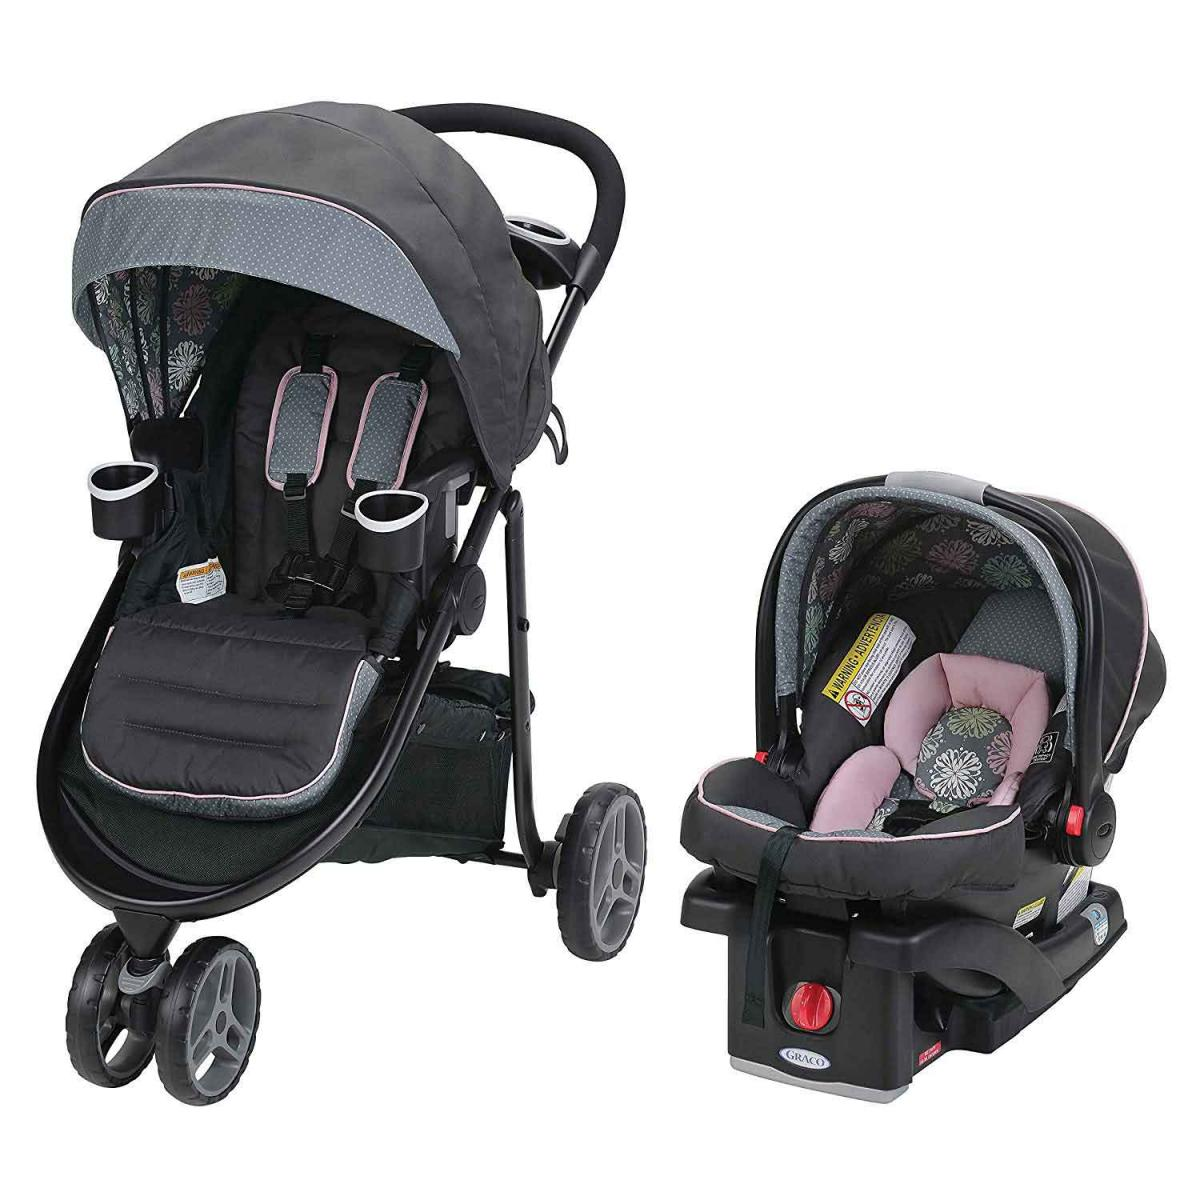 Graco Modes Travel System